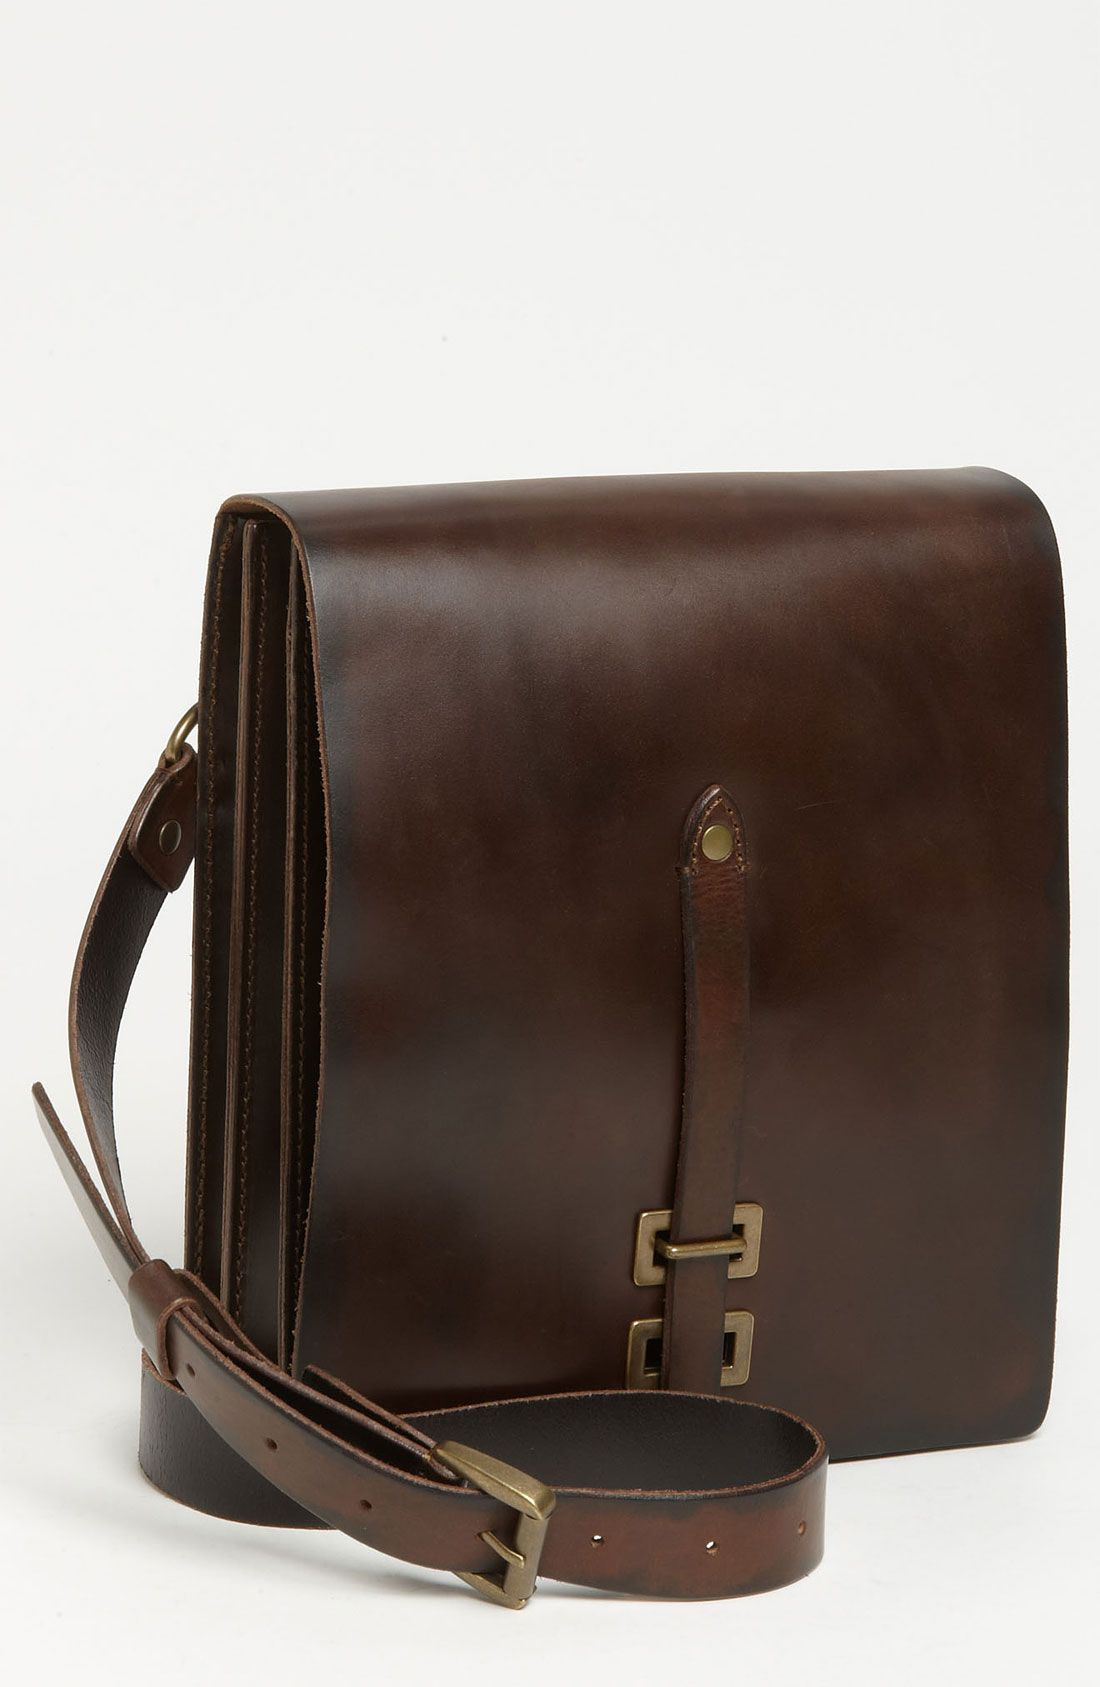 45f36126d926 Free shipping and returns on Fossil  Vintage Archive Officer s  Crossbody  Bag at Nordstrom.com. Gorgeously tanned leather structures a handsome  throwback ...